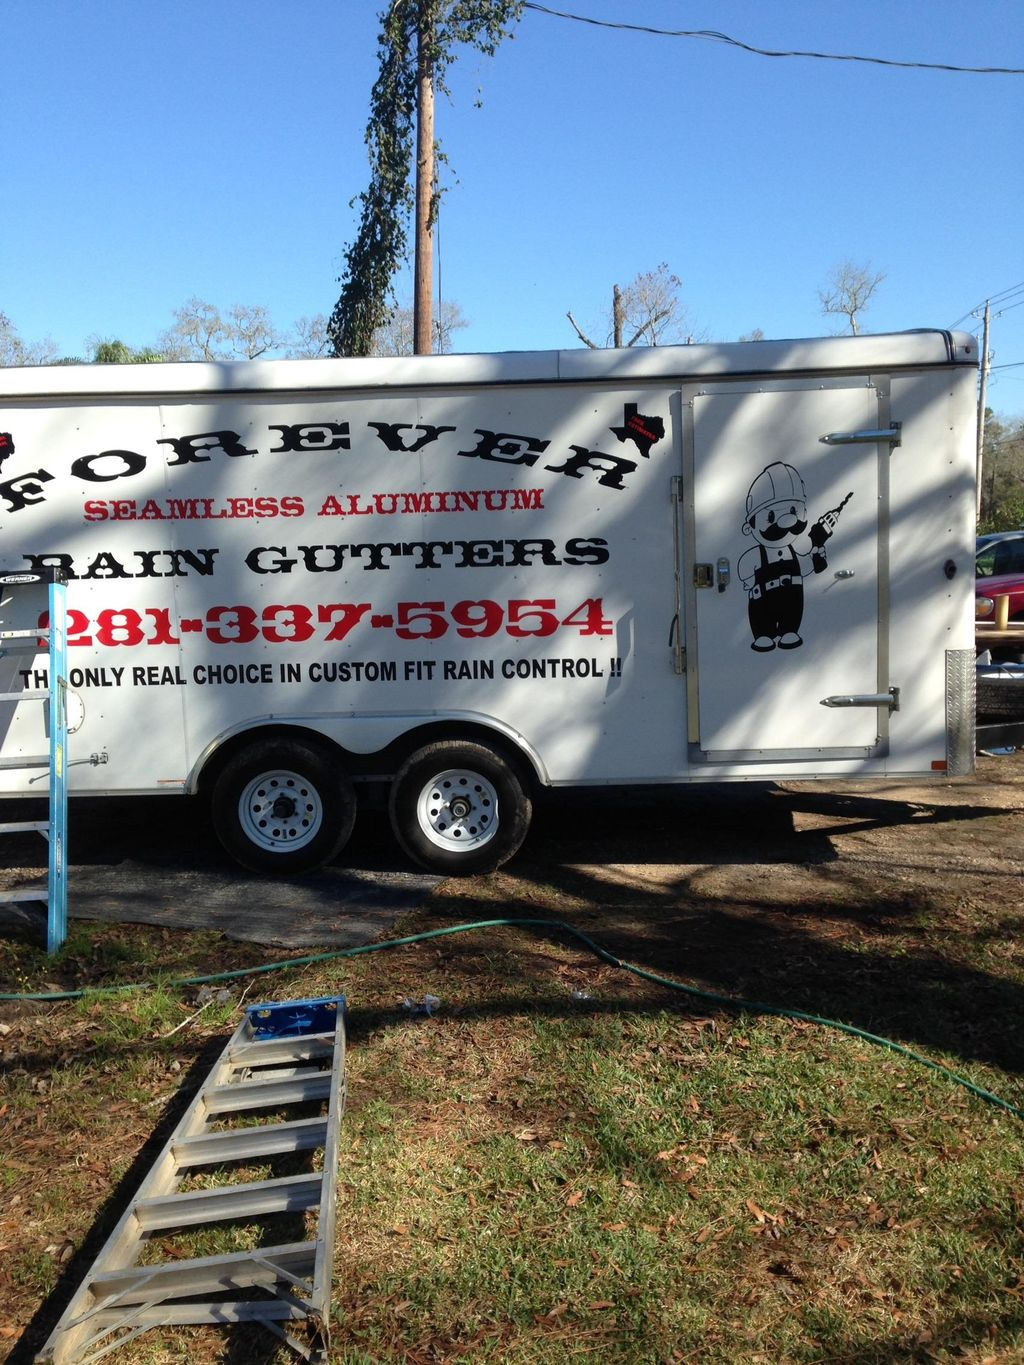 FOREVER RAIN GUTTERS The only real choice in cu...